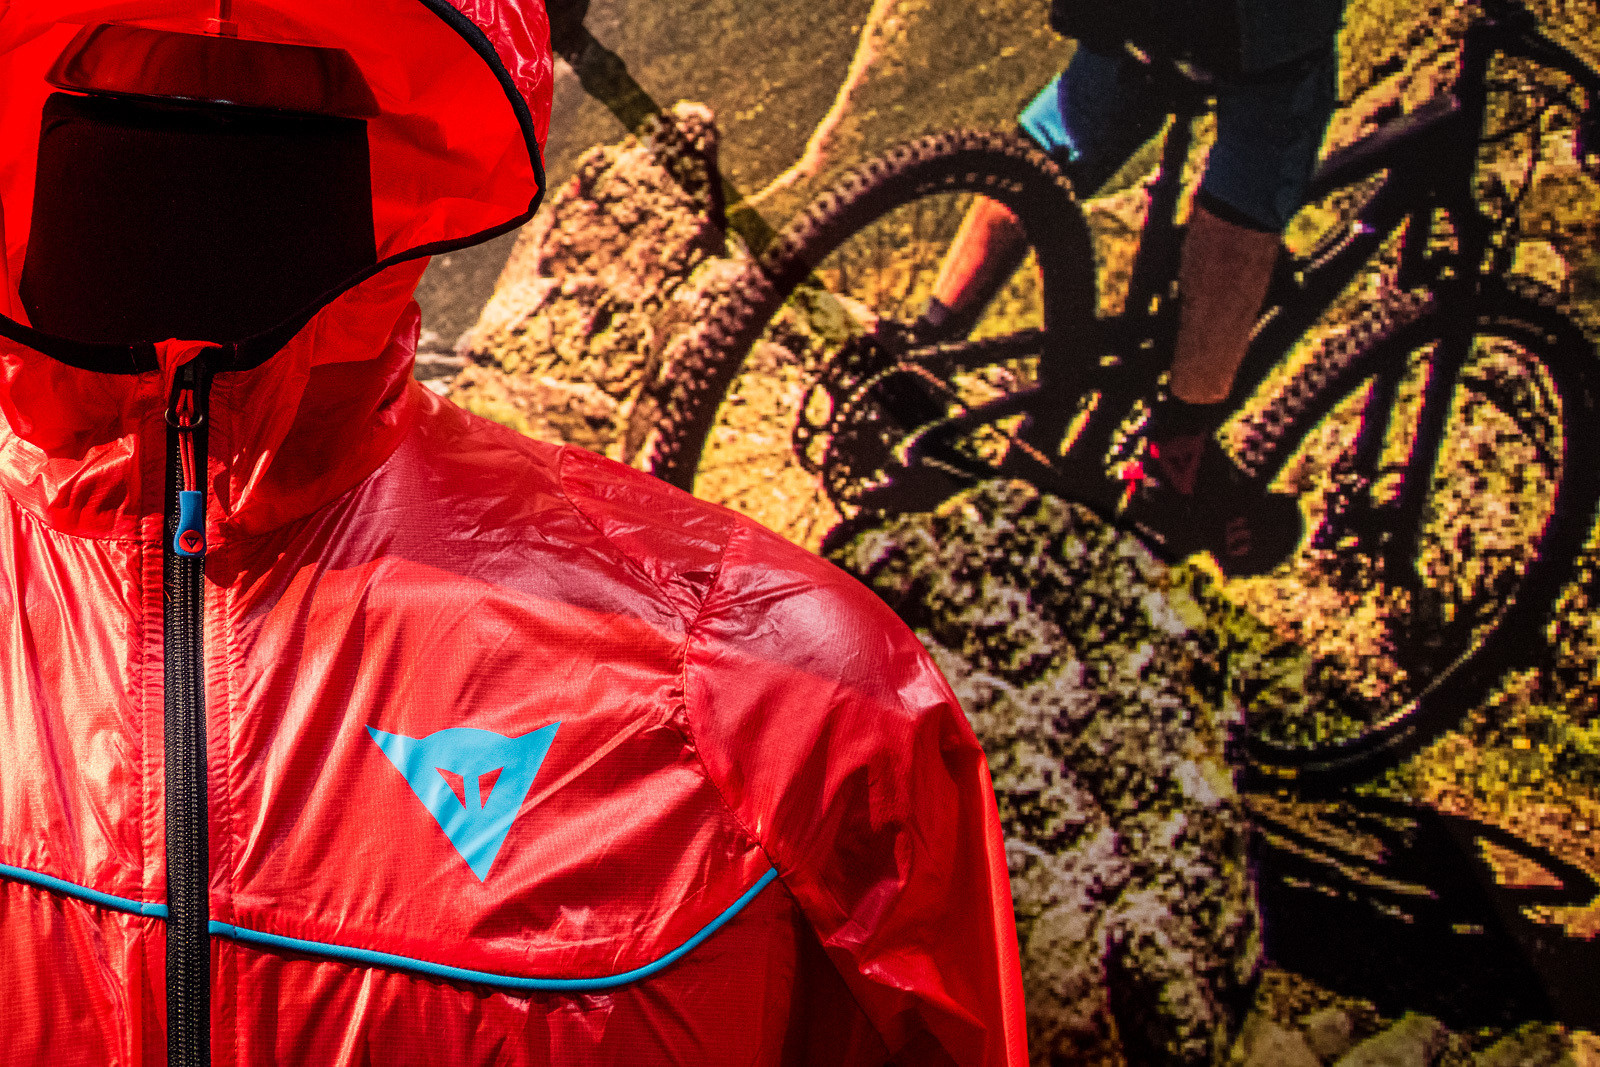 2016 Dainese Altitune Collection - 2016 Protective Gear and Apparel at Interbike - Mountain Biking Pictures - Vital MTB